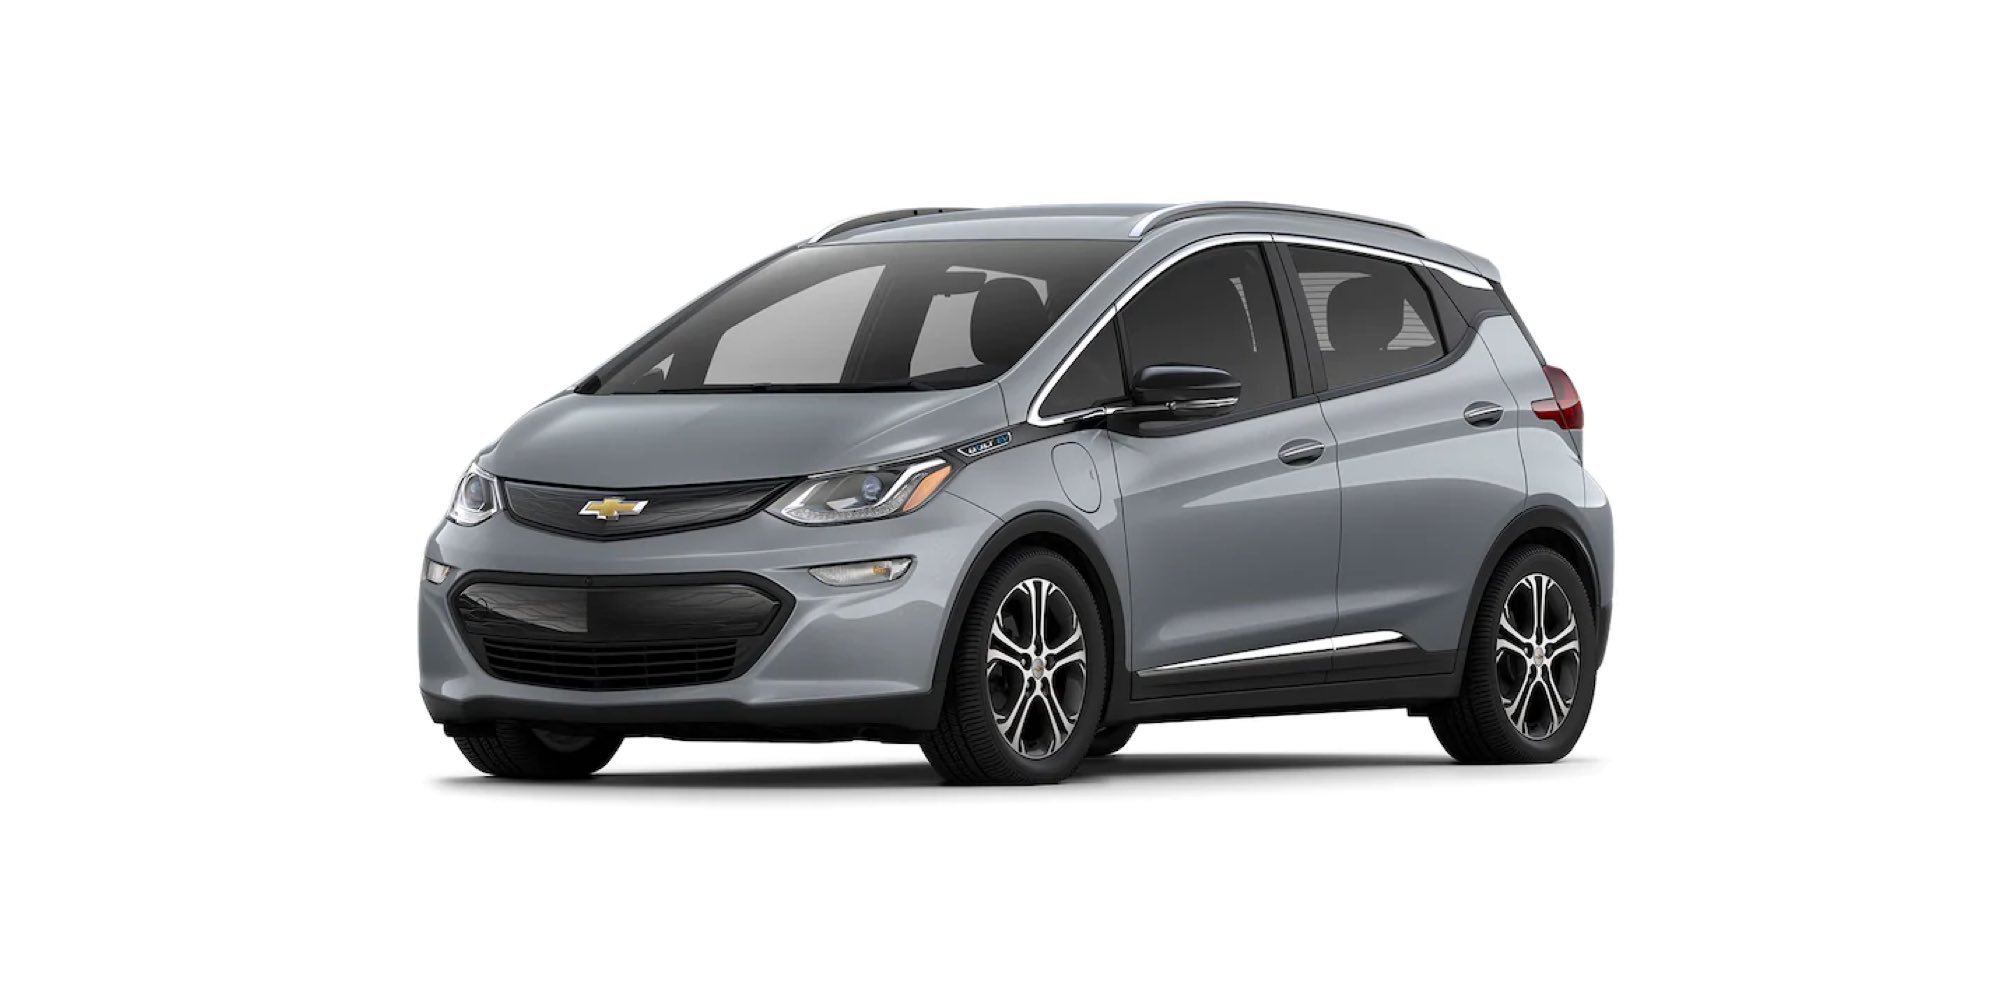 2021 Chevy Bolt EV in Slate Gray Metallic